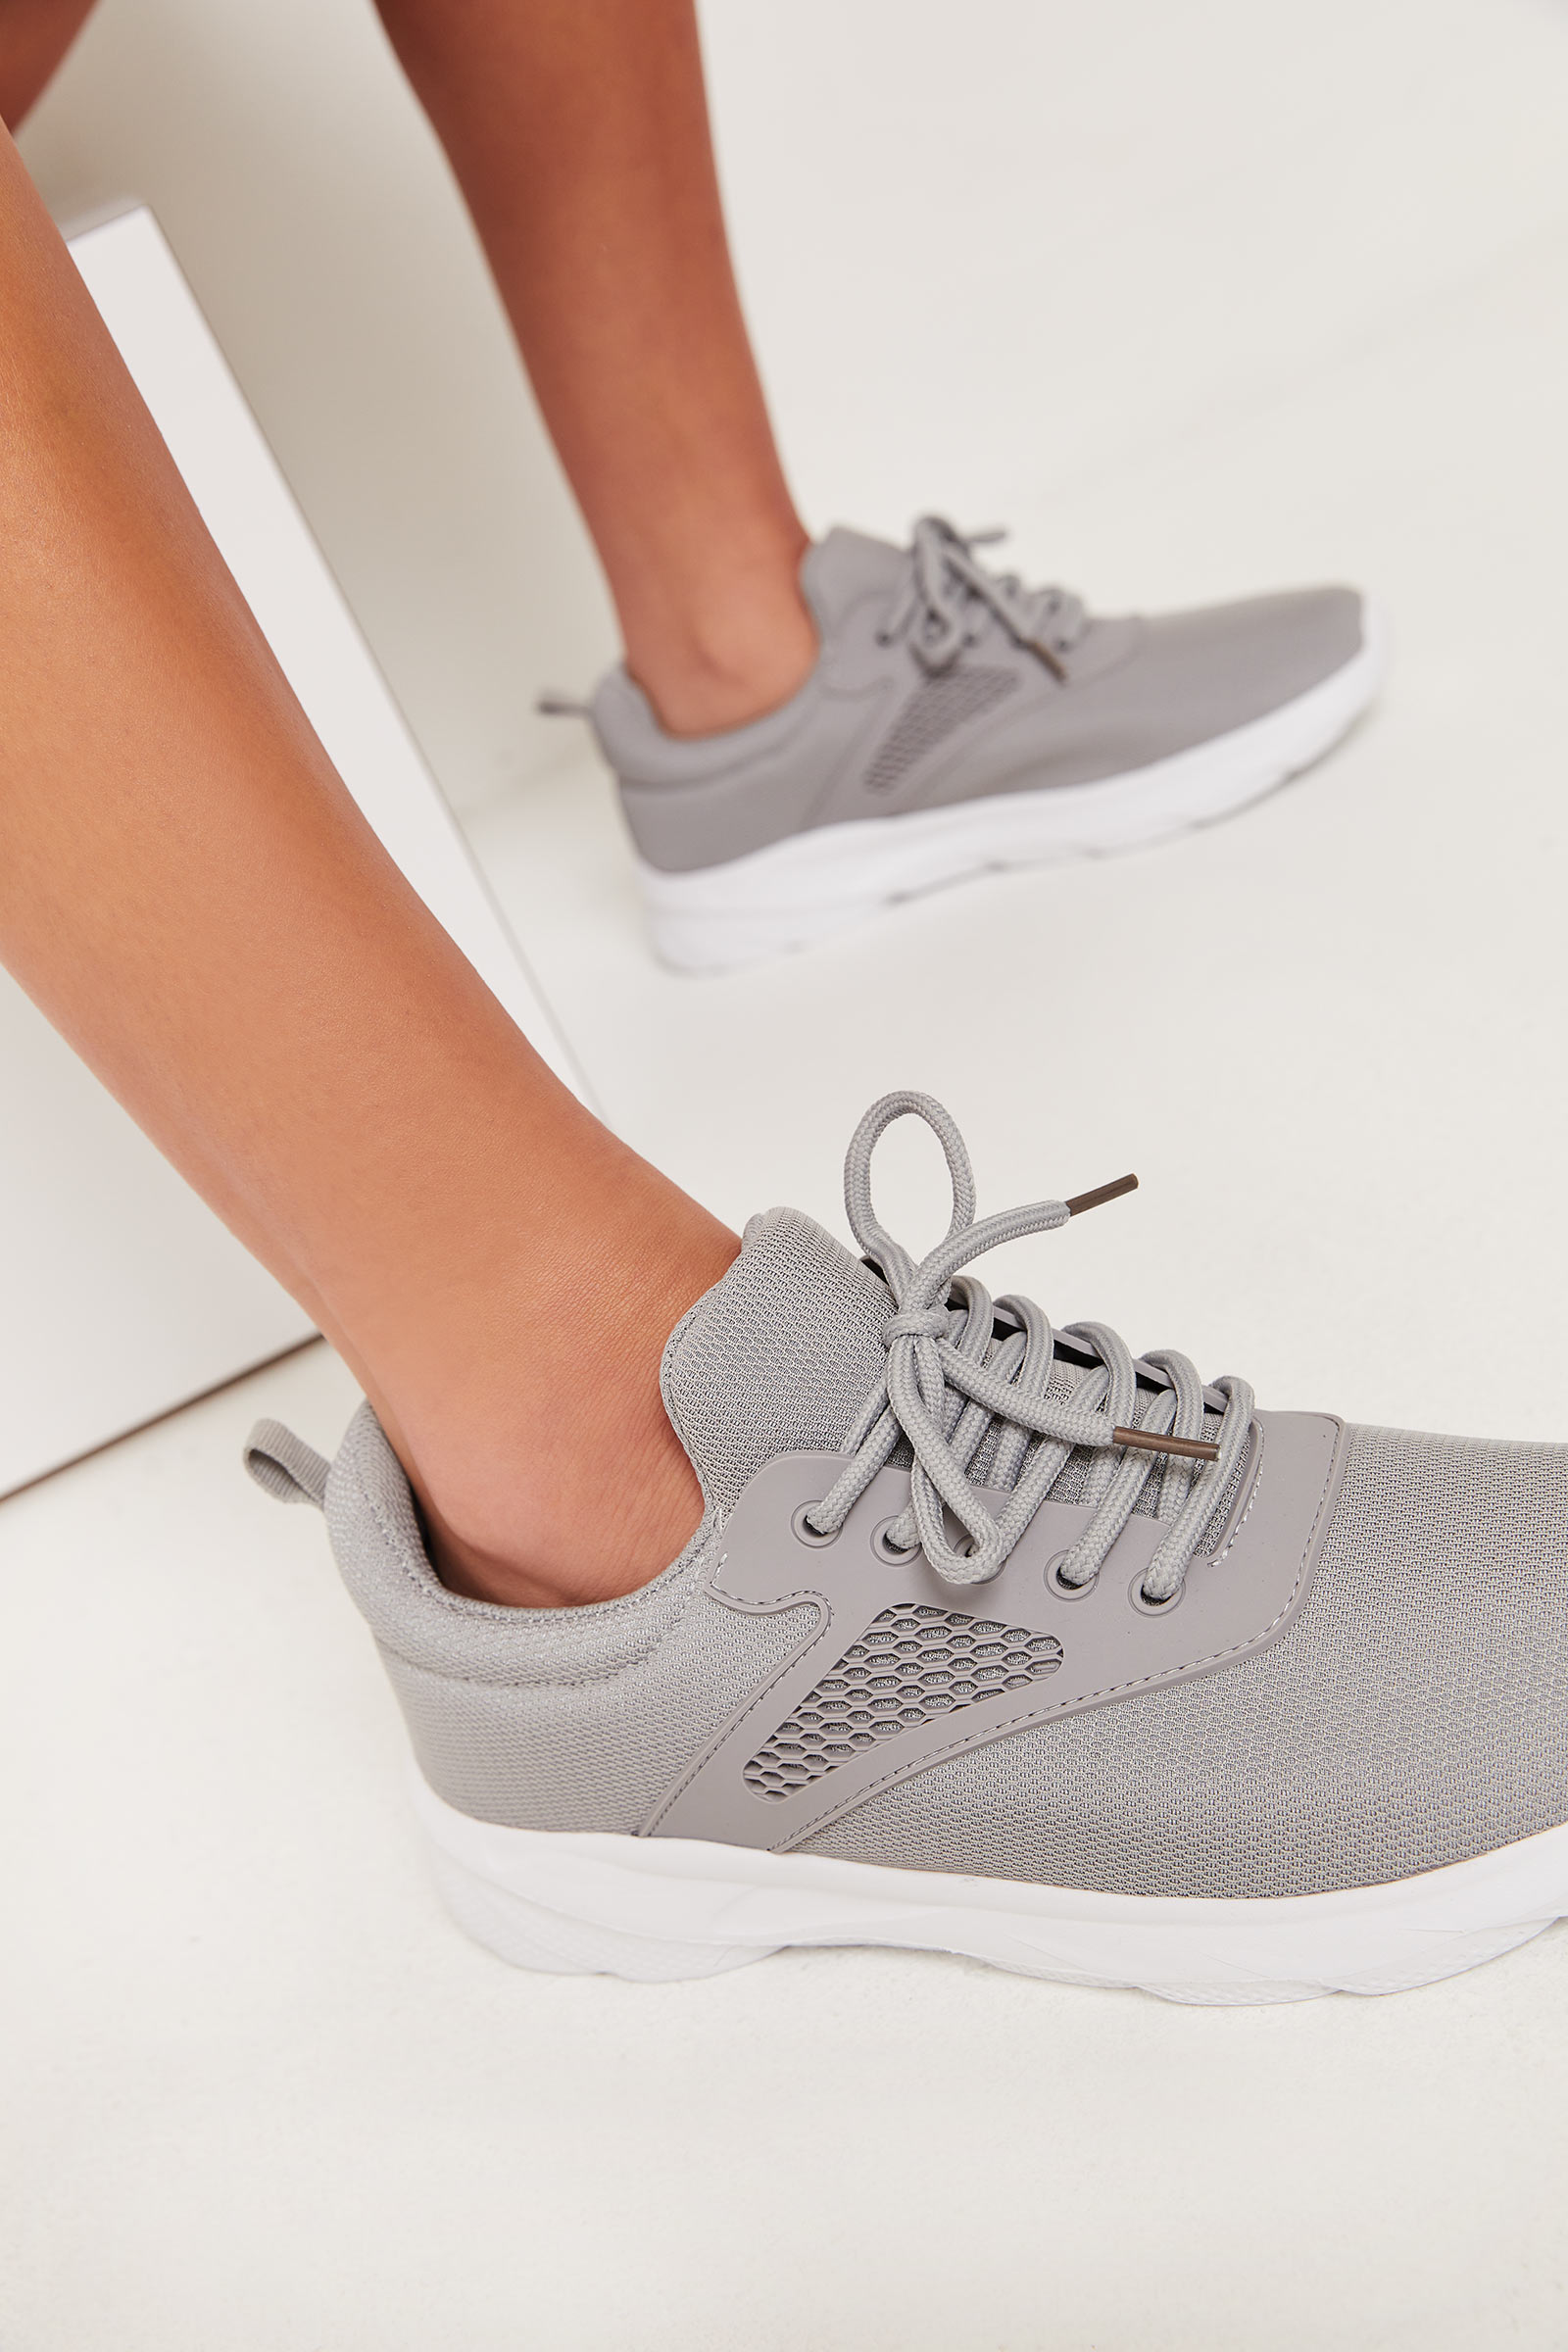 MOVE Athletic Sneakers